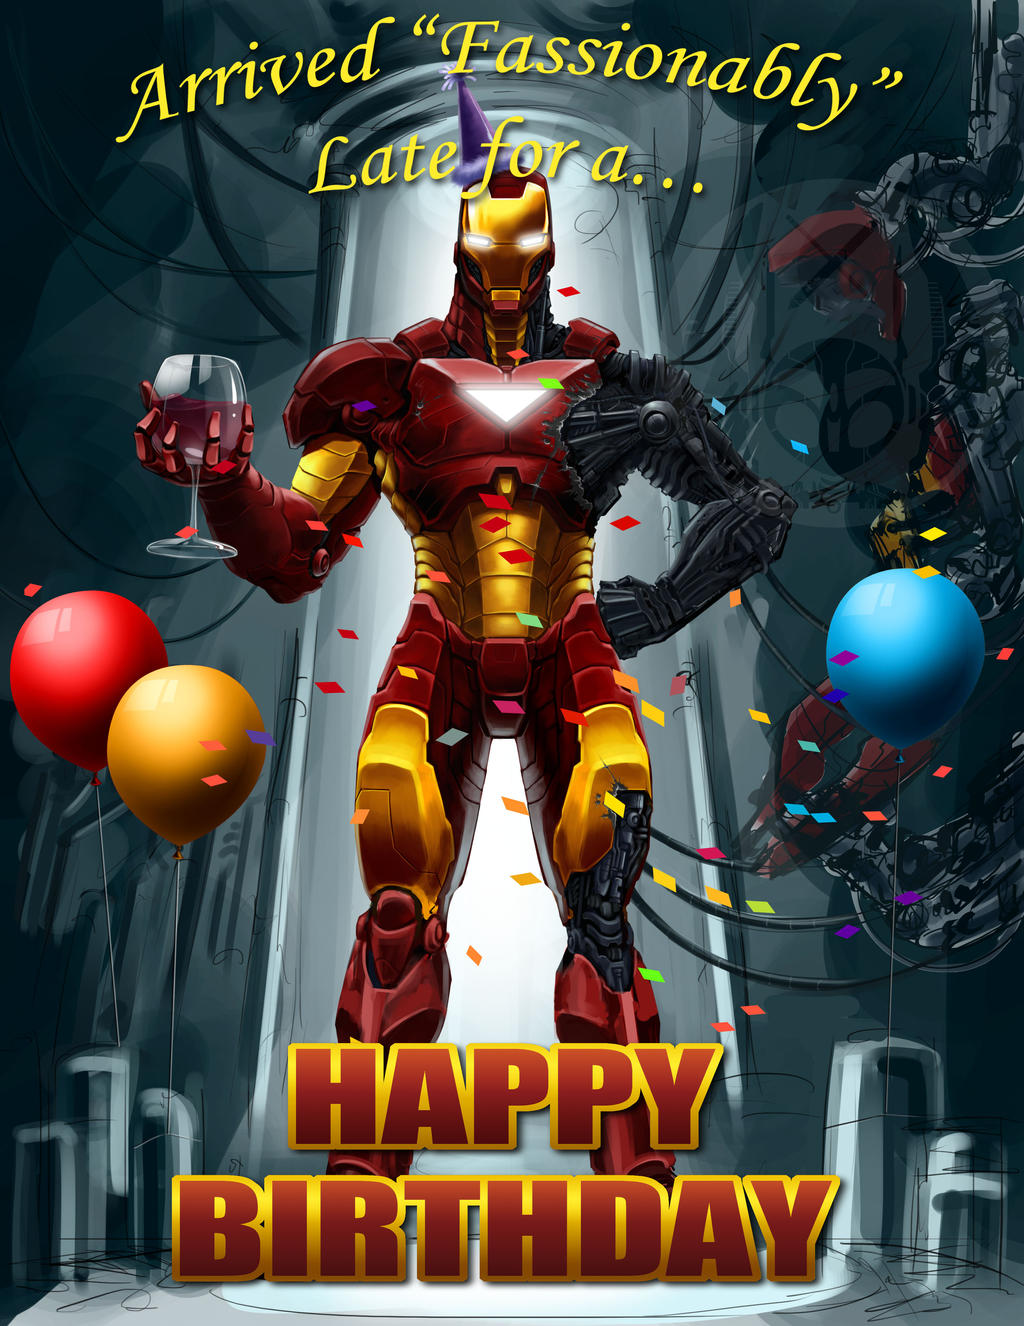 Happy Birthday Iron Man 2000 School of Dragons How to Train